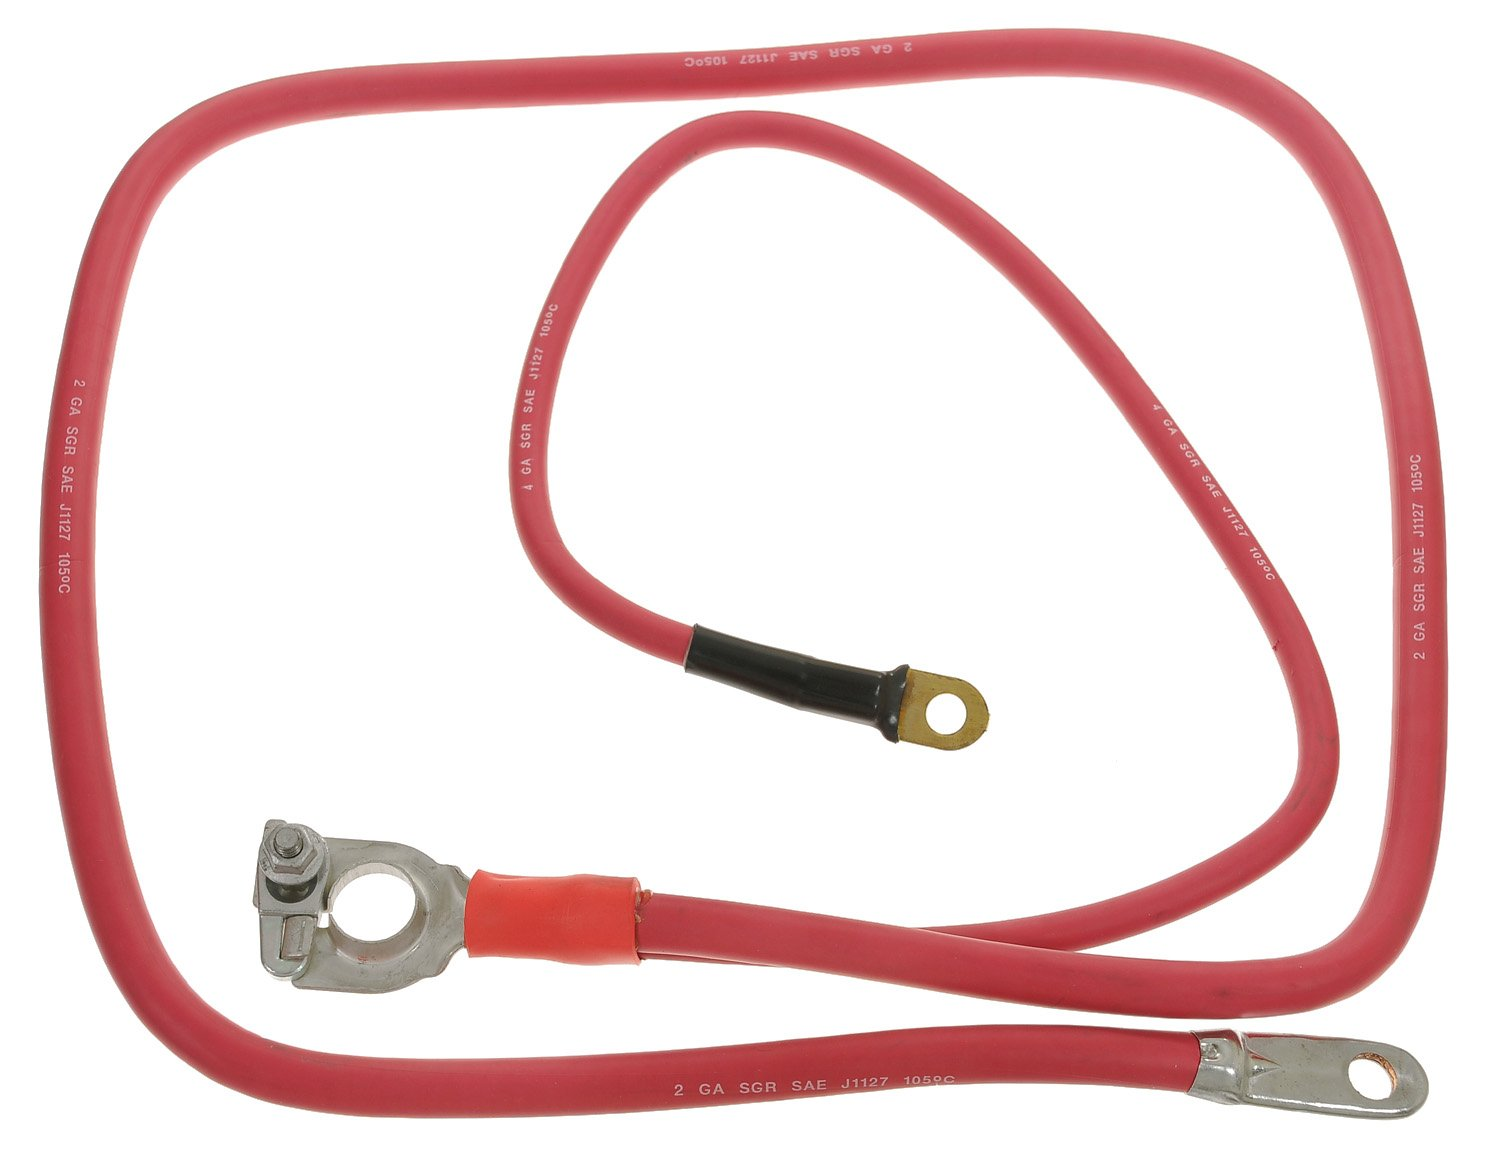 ACDelco 2BC49X Professional Red 2 Gauge Positive Lead Free Battery Cable with Auxiliary Leads by ACDelco